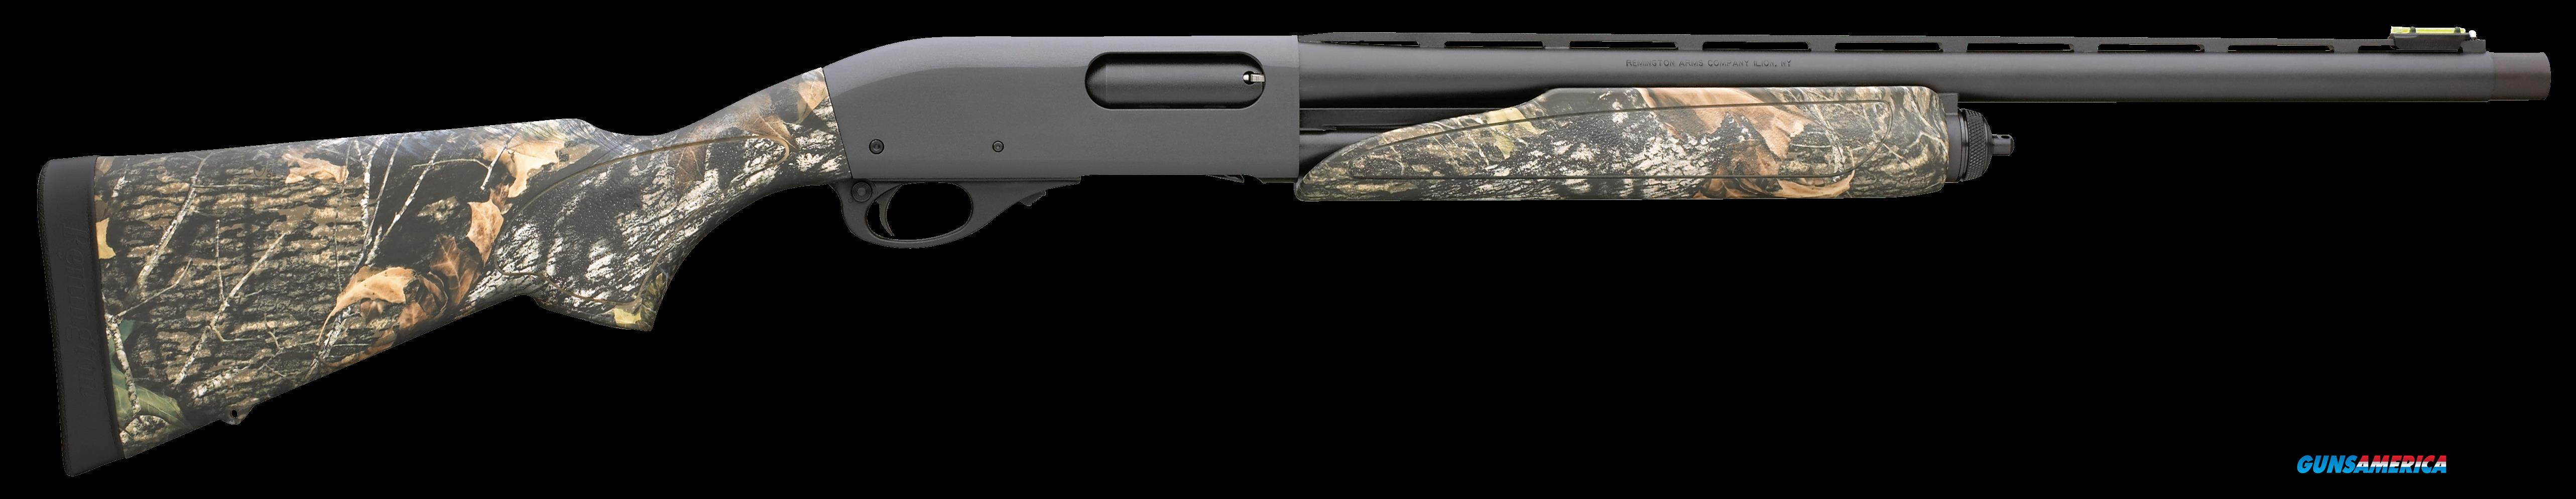 "Remington Firearms 81115 870 Pump 12 Gauge 21"" 3"" Mossy Oak Break-Up Synthetic Stk Parkerized Rcvr  Guns > Shotguns > R Misc Shotguns"